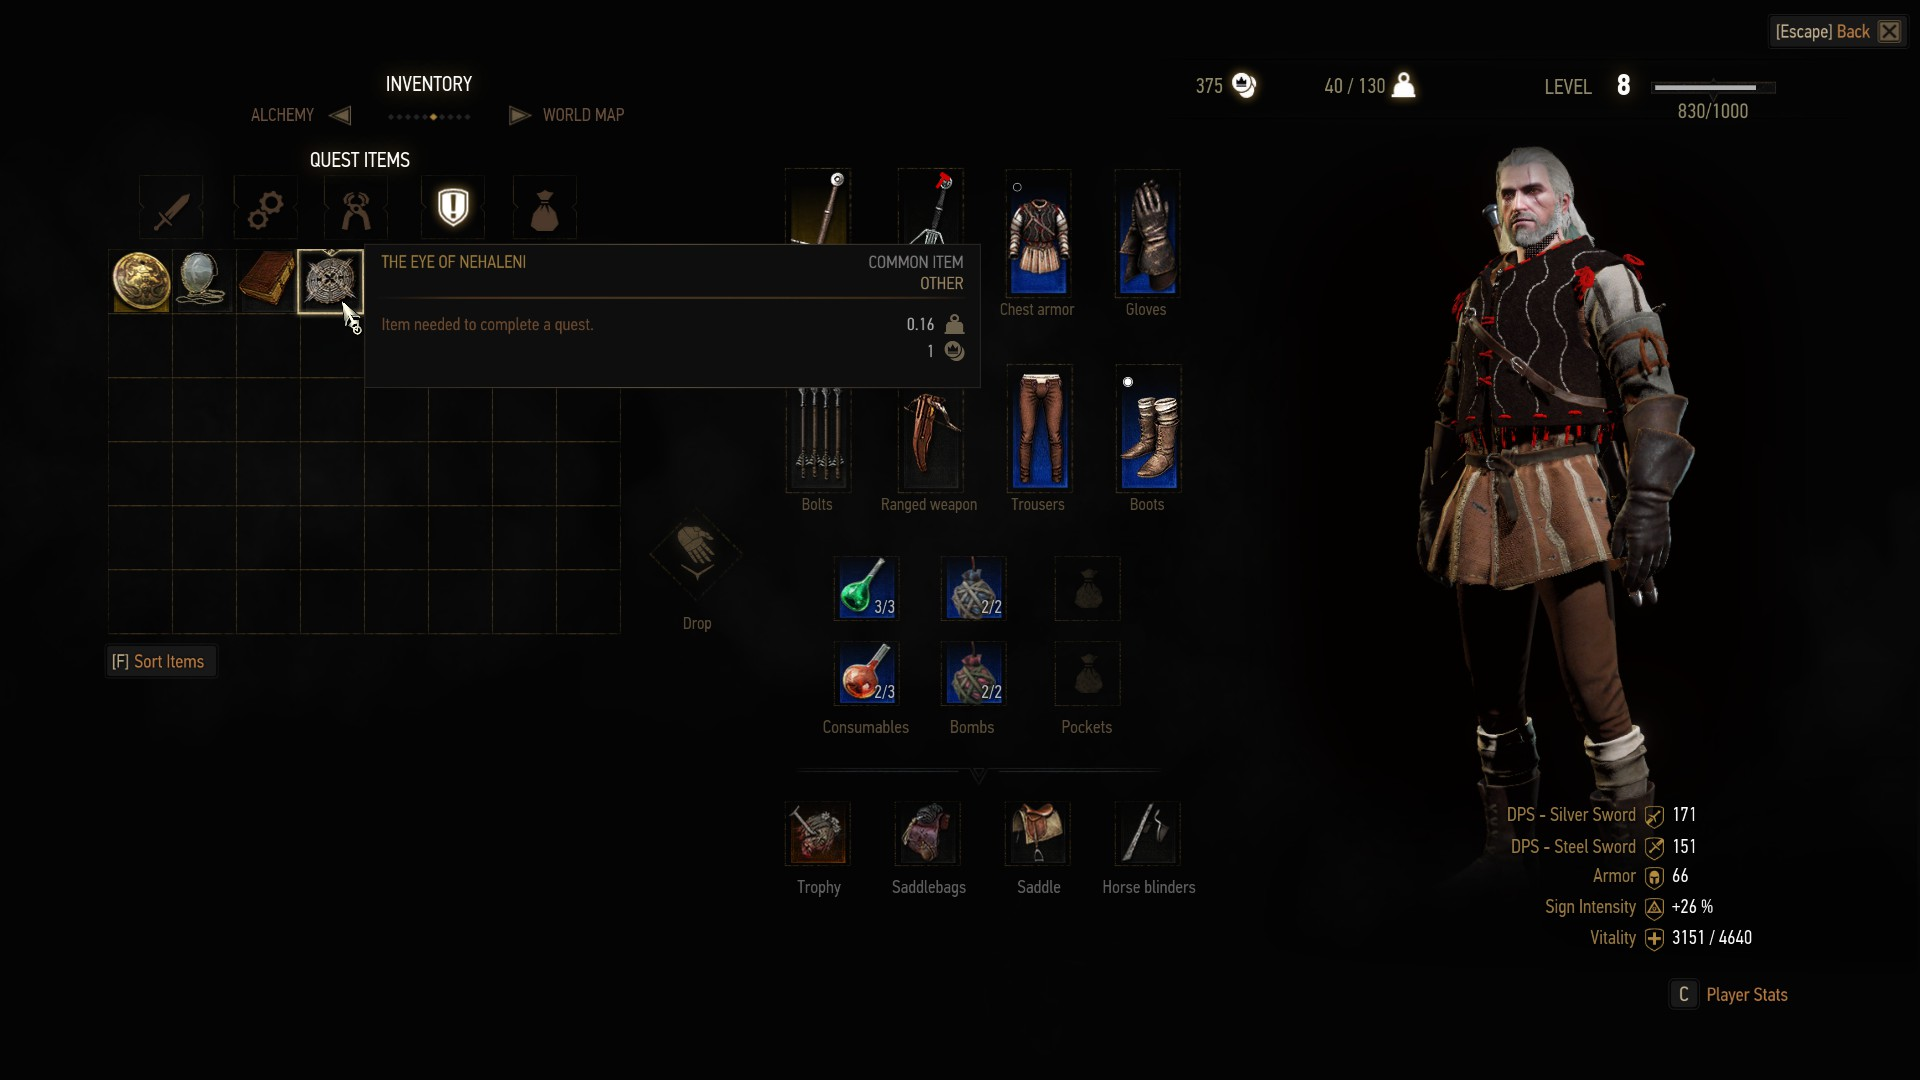 Cannot equip the Eye of Nehaleni | Forums - CD PROJEKT RED